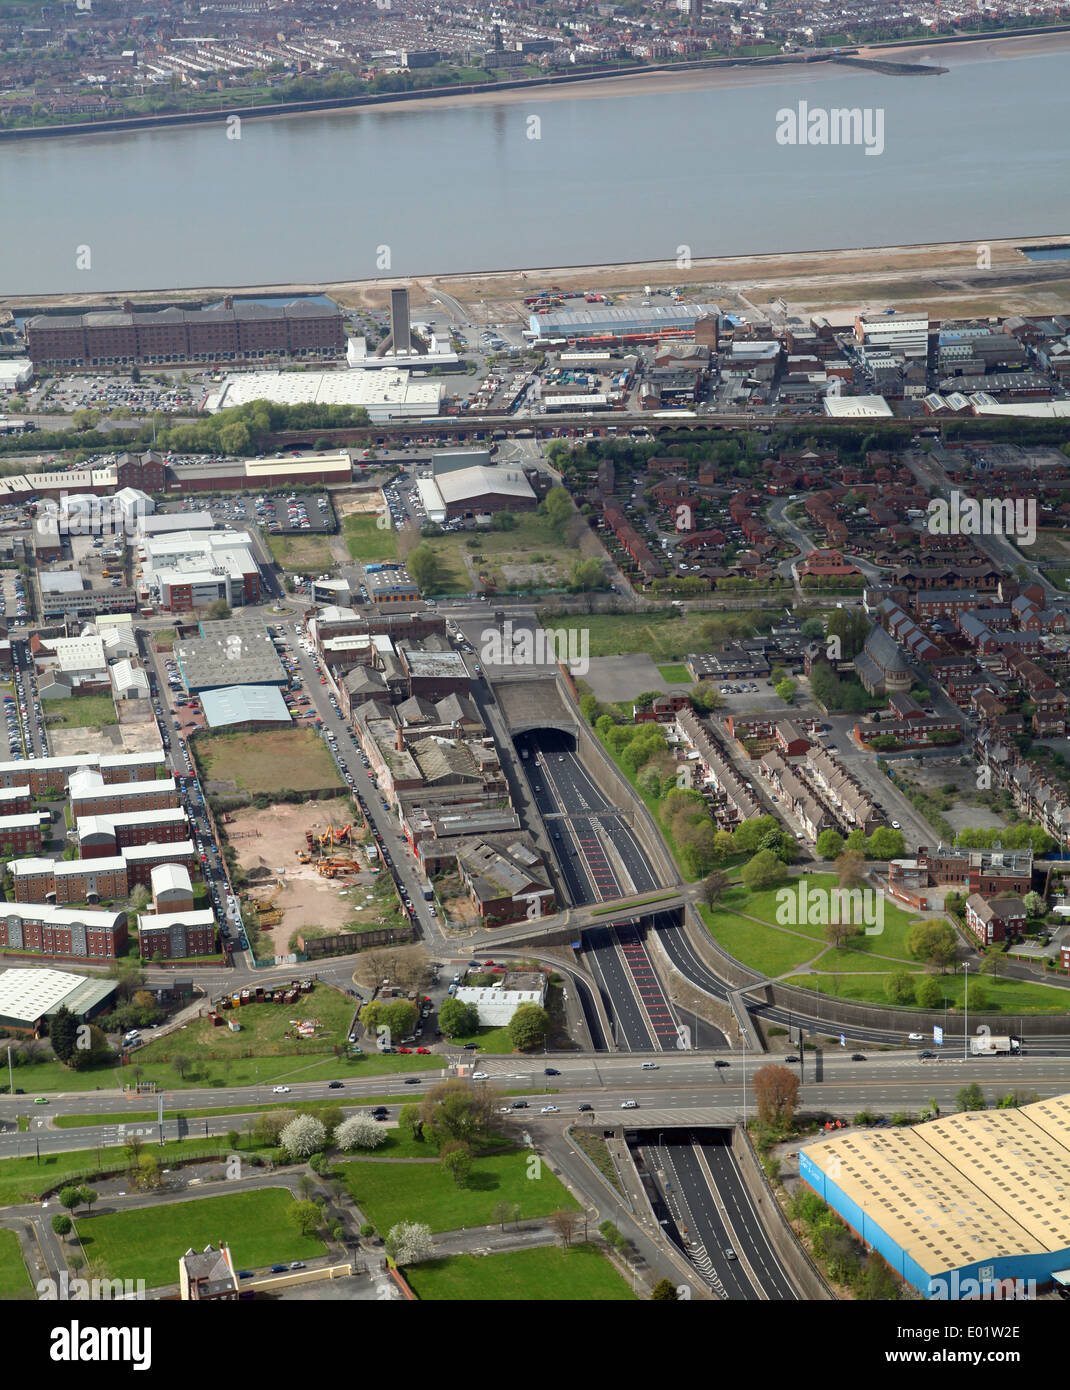 aerial view of the eastern entrance to the Mersey Tunnel in Liverpool - Stock Image